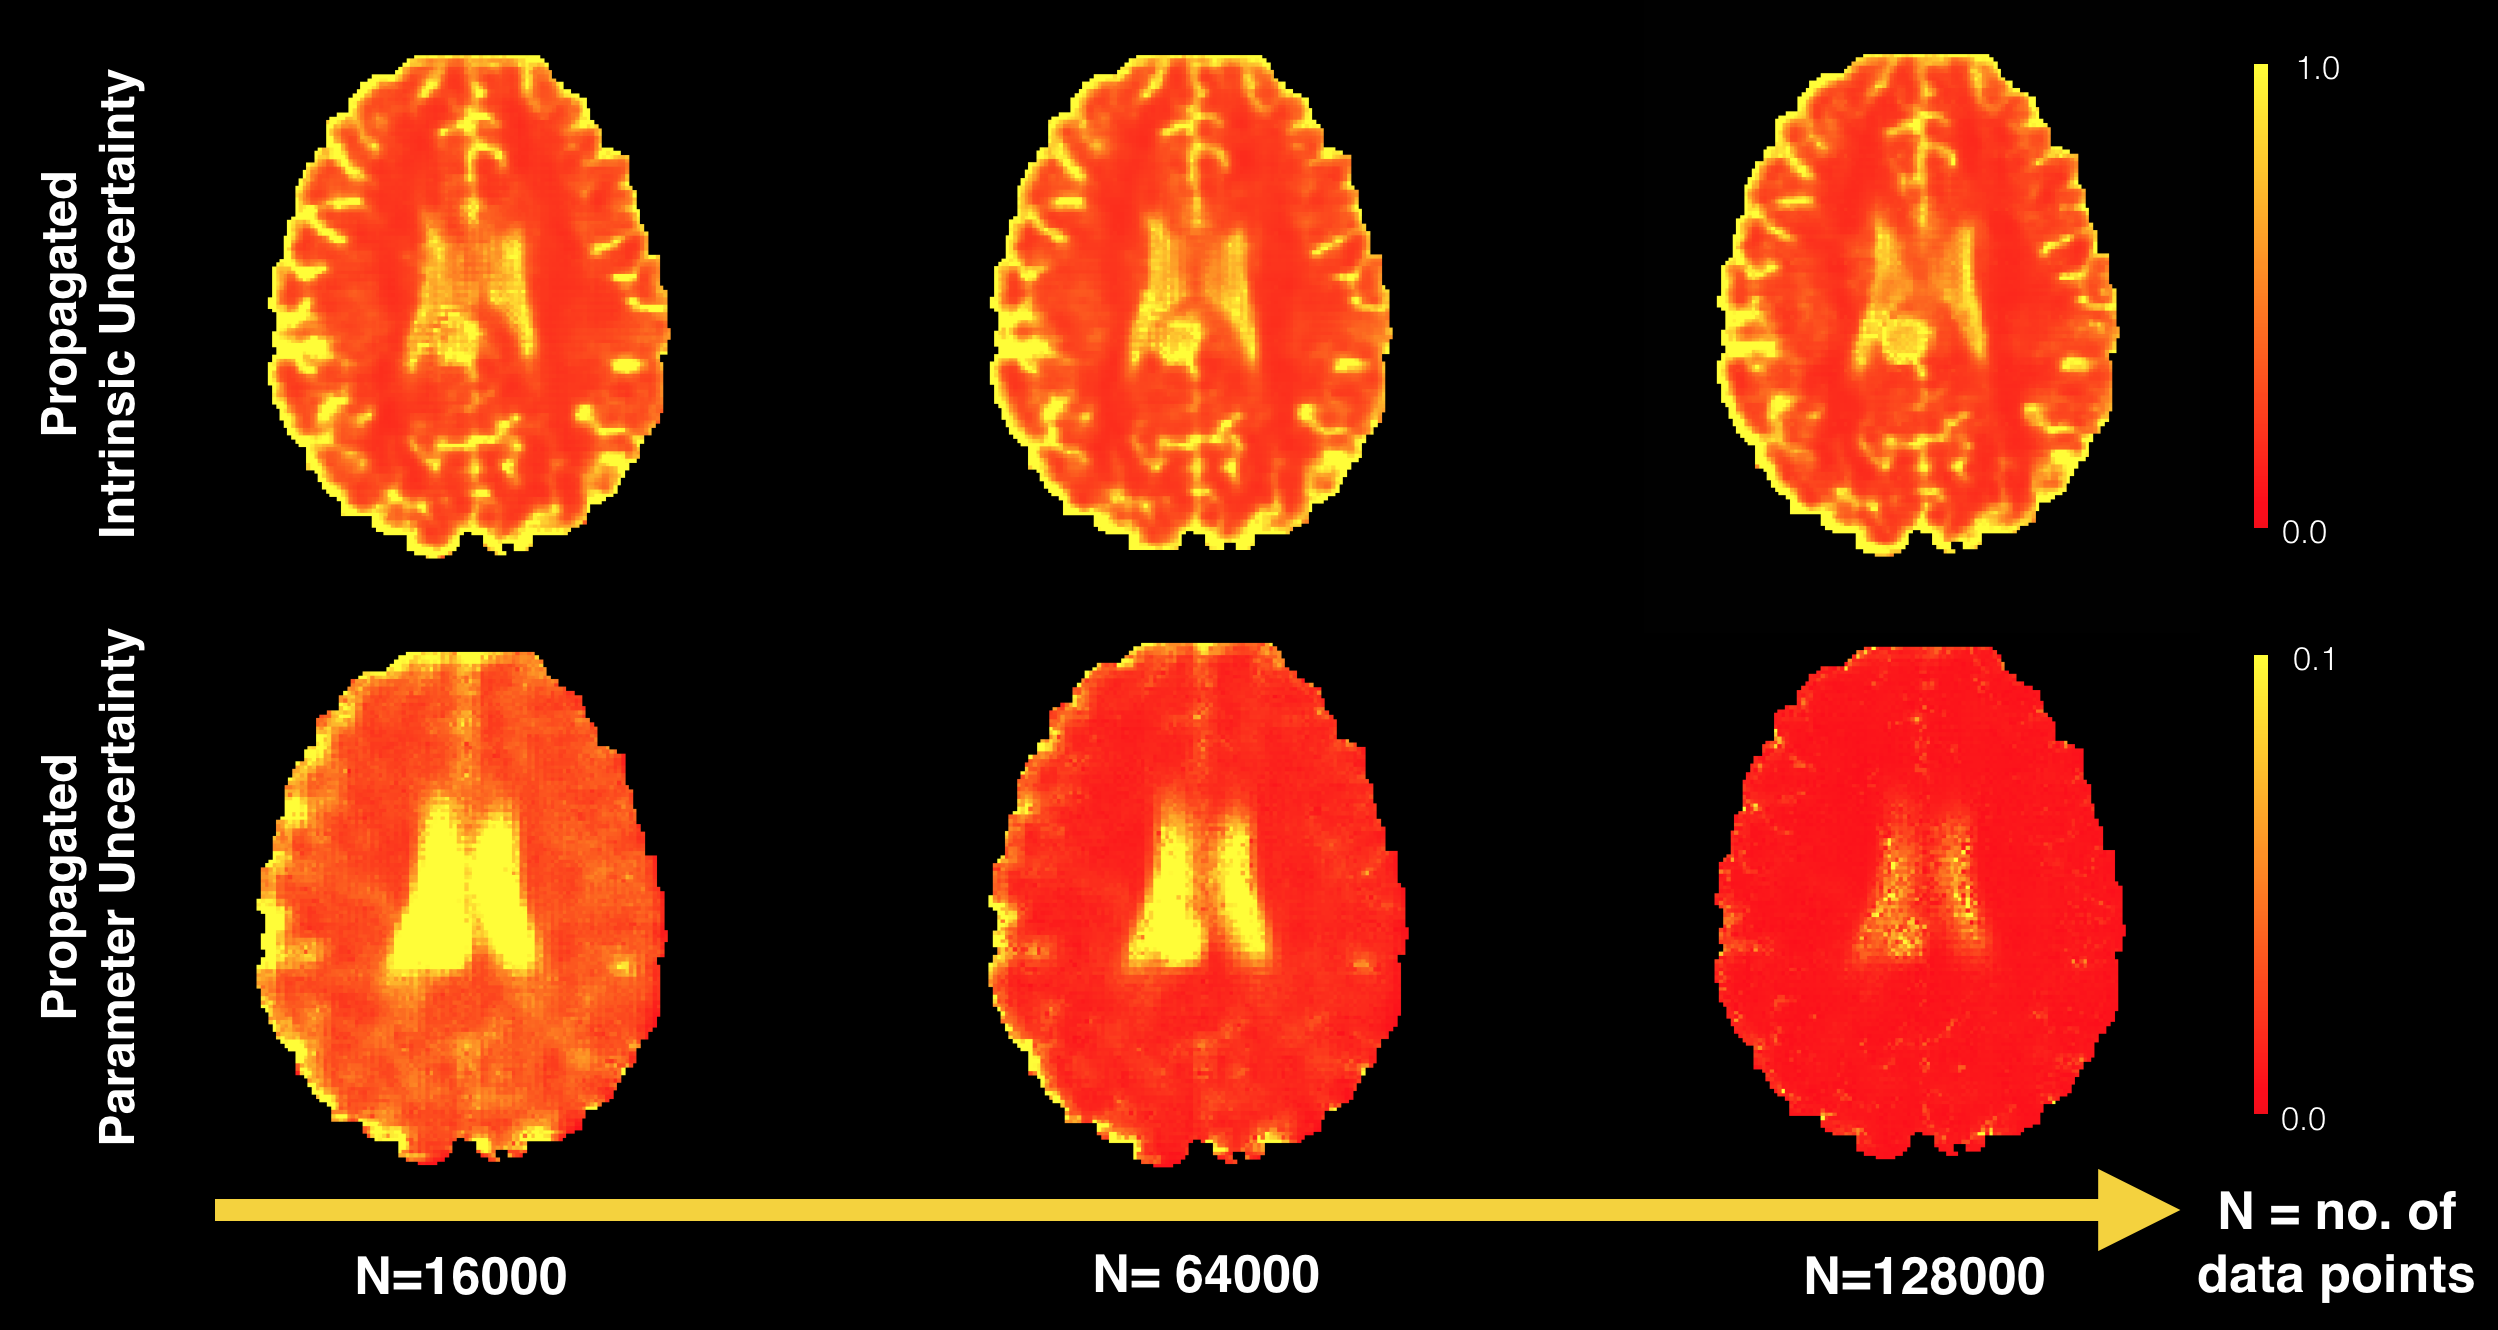 Training set size vs propagated intrinsic/parameter uncertainty on the MD map of an unseen HCP subject with a benign cyst. The uncertainty maps are normalised across all the figures.